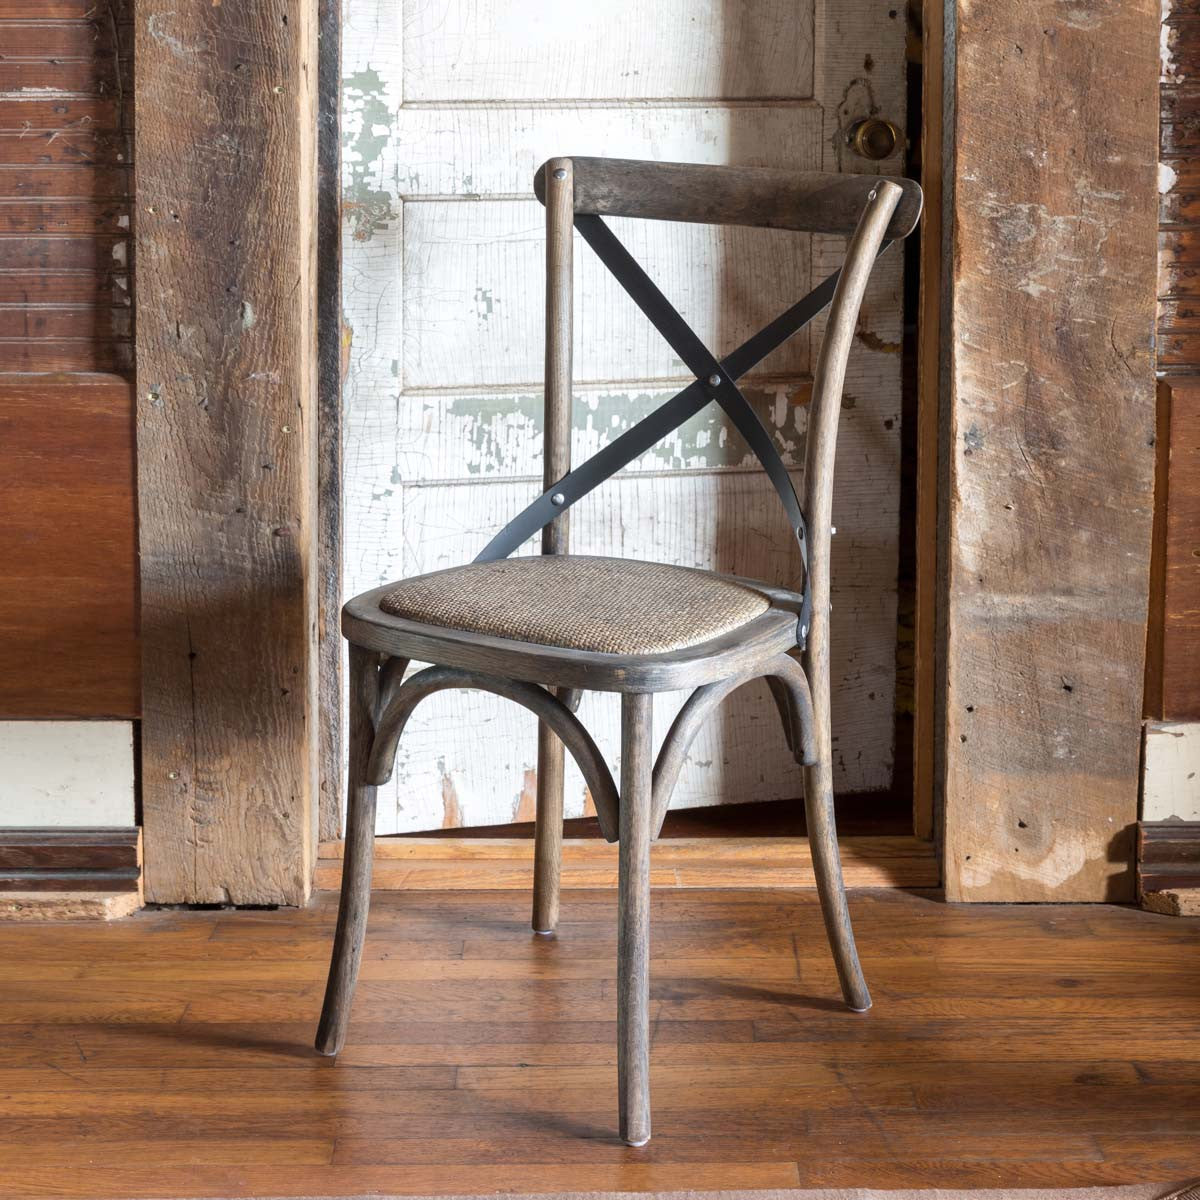 Metal Cross Back Wood Chair-Furniture-A Cottage in the City